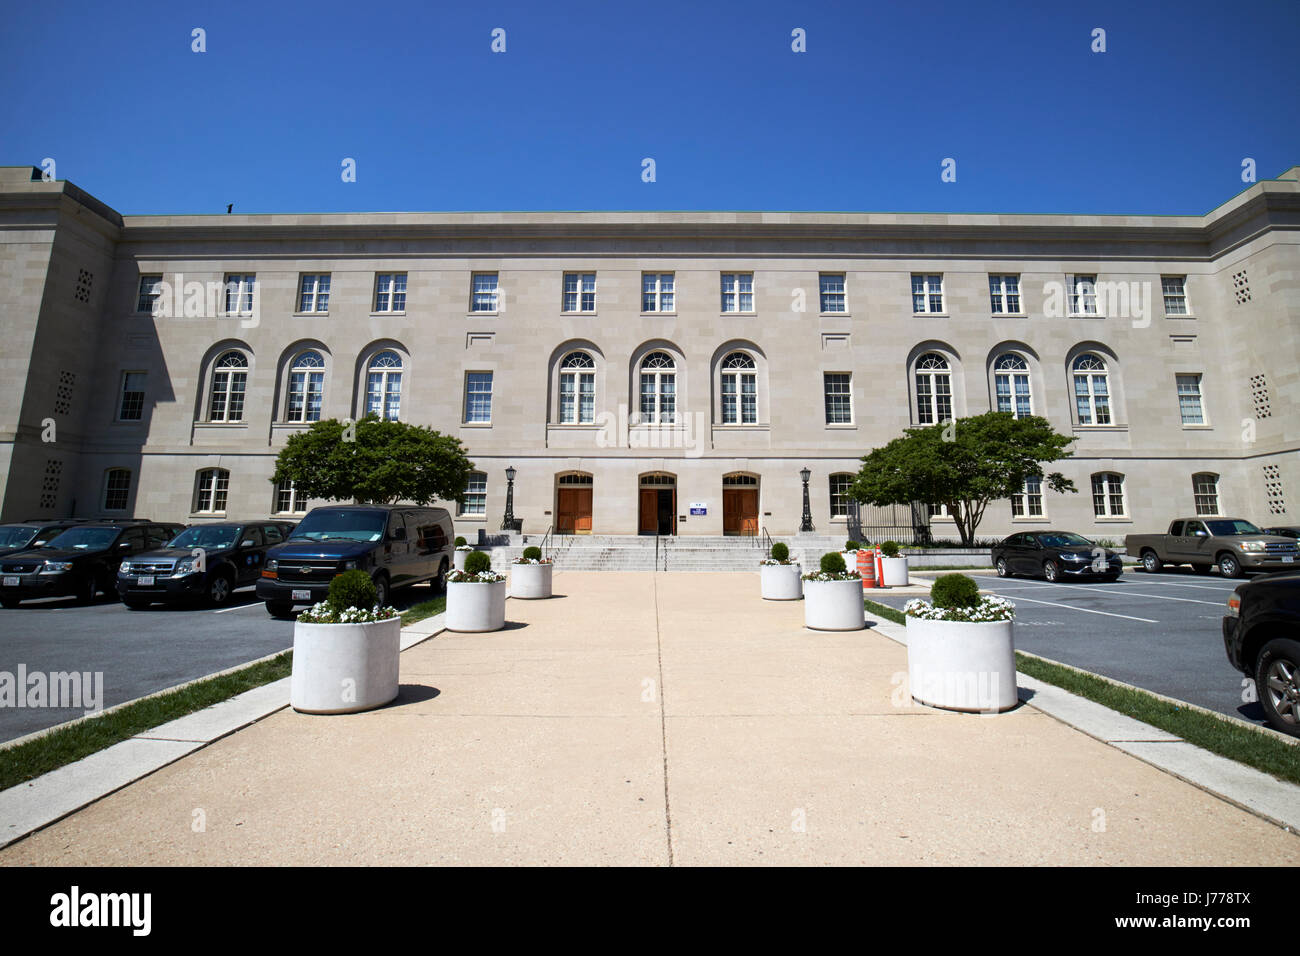 superior court of the district of columbia building b Washington judiciary square DC USA - Stock Image